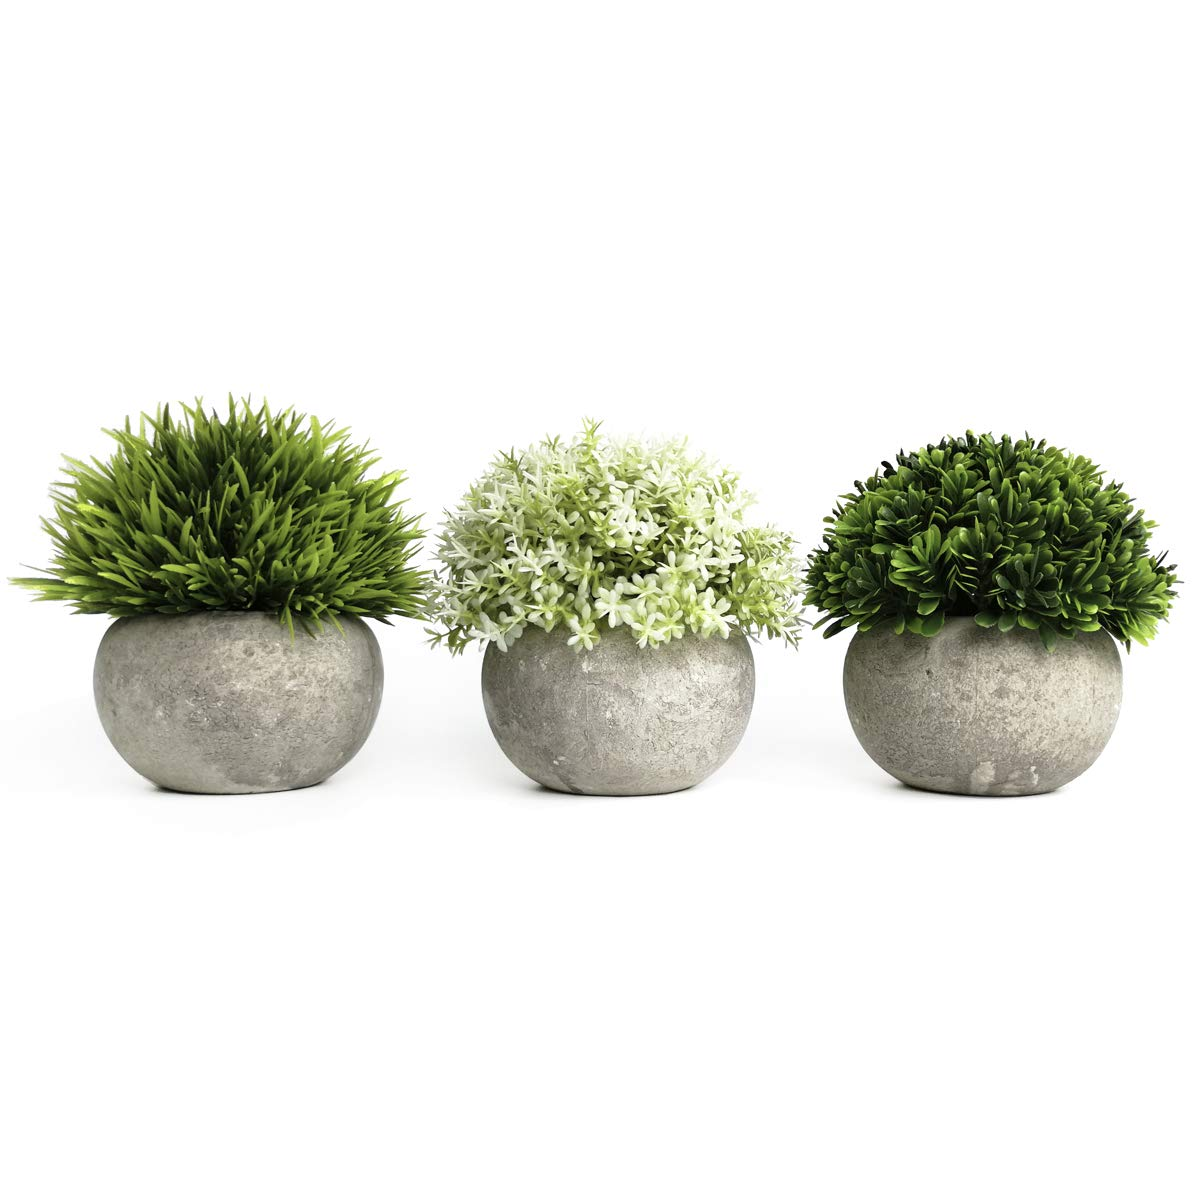 Tuokor 4.75'' Mini Artificial Plastic Plants Green Grass Shrubs White Flowers with Gray Pots for Home Decor, Office Decor - Set of 3 by Tuokor